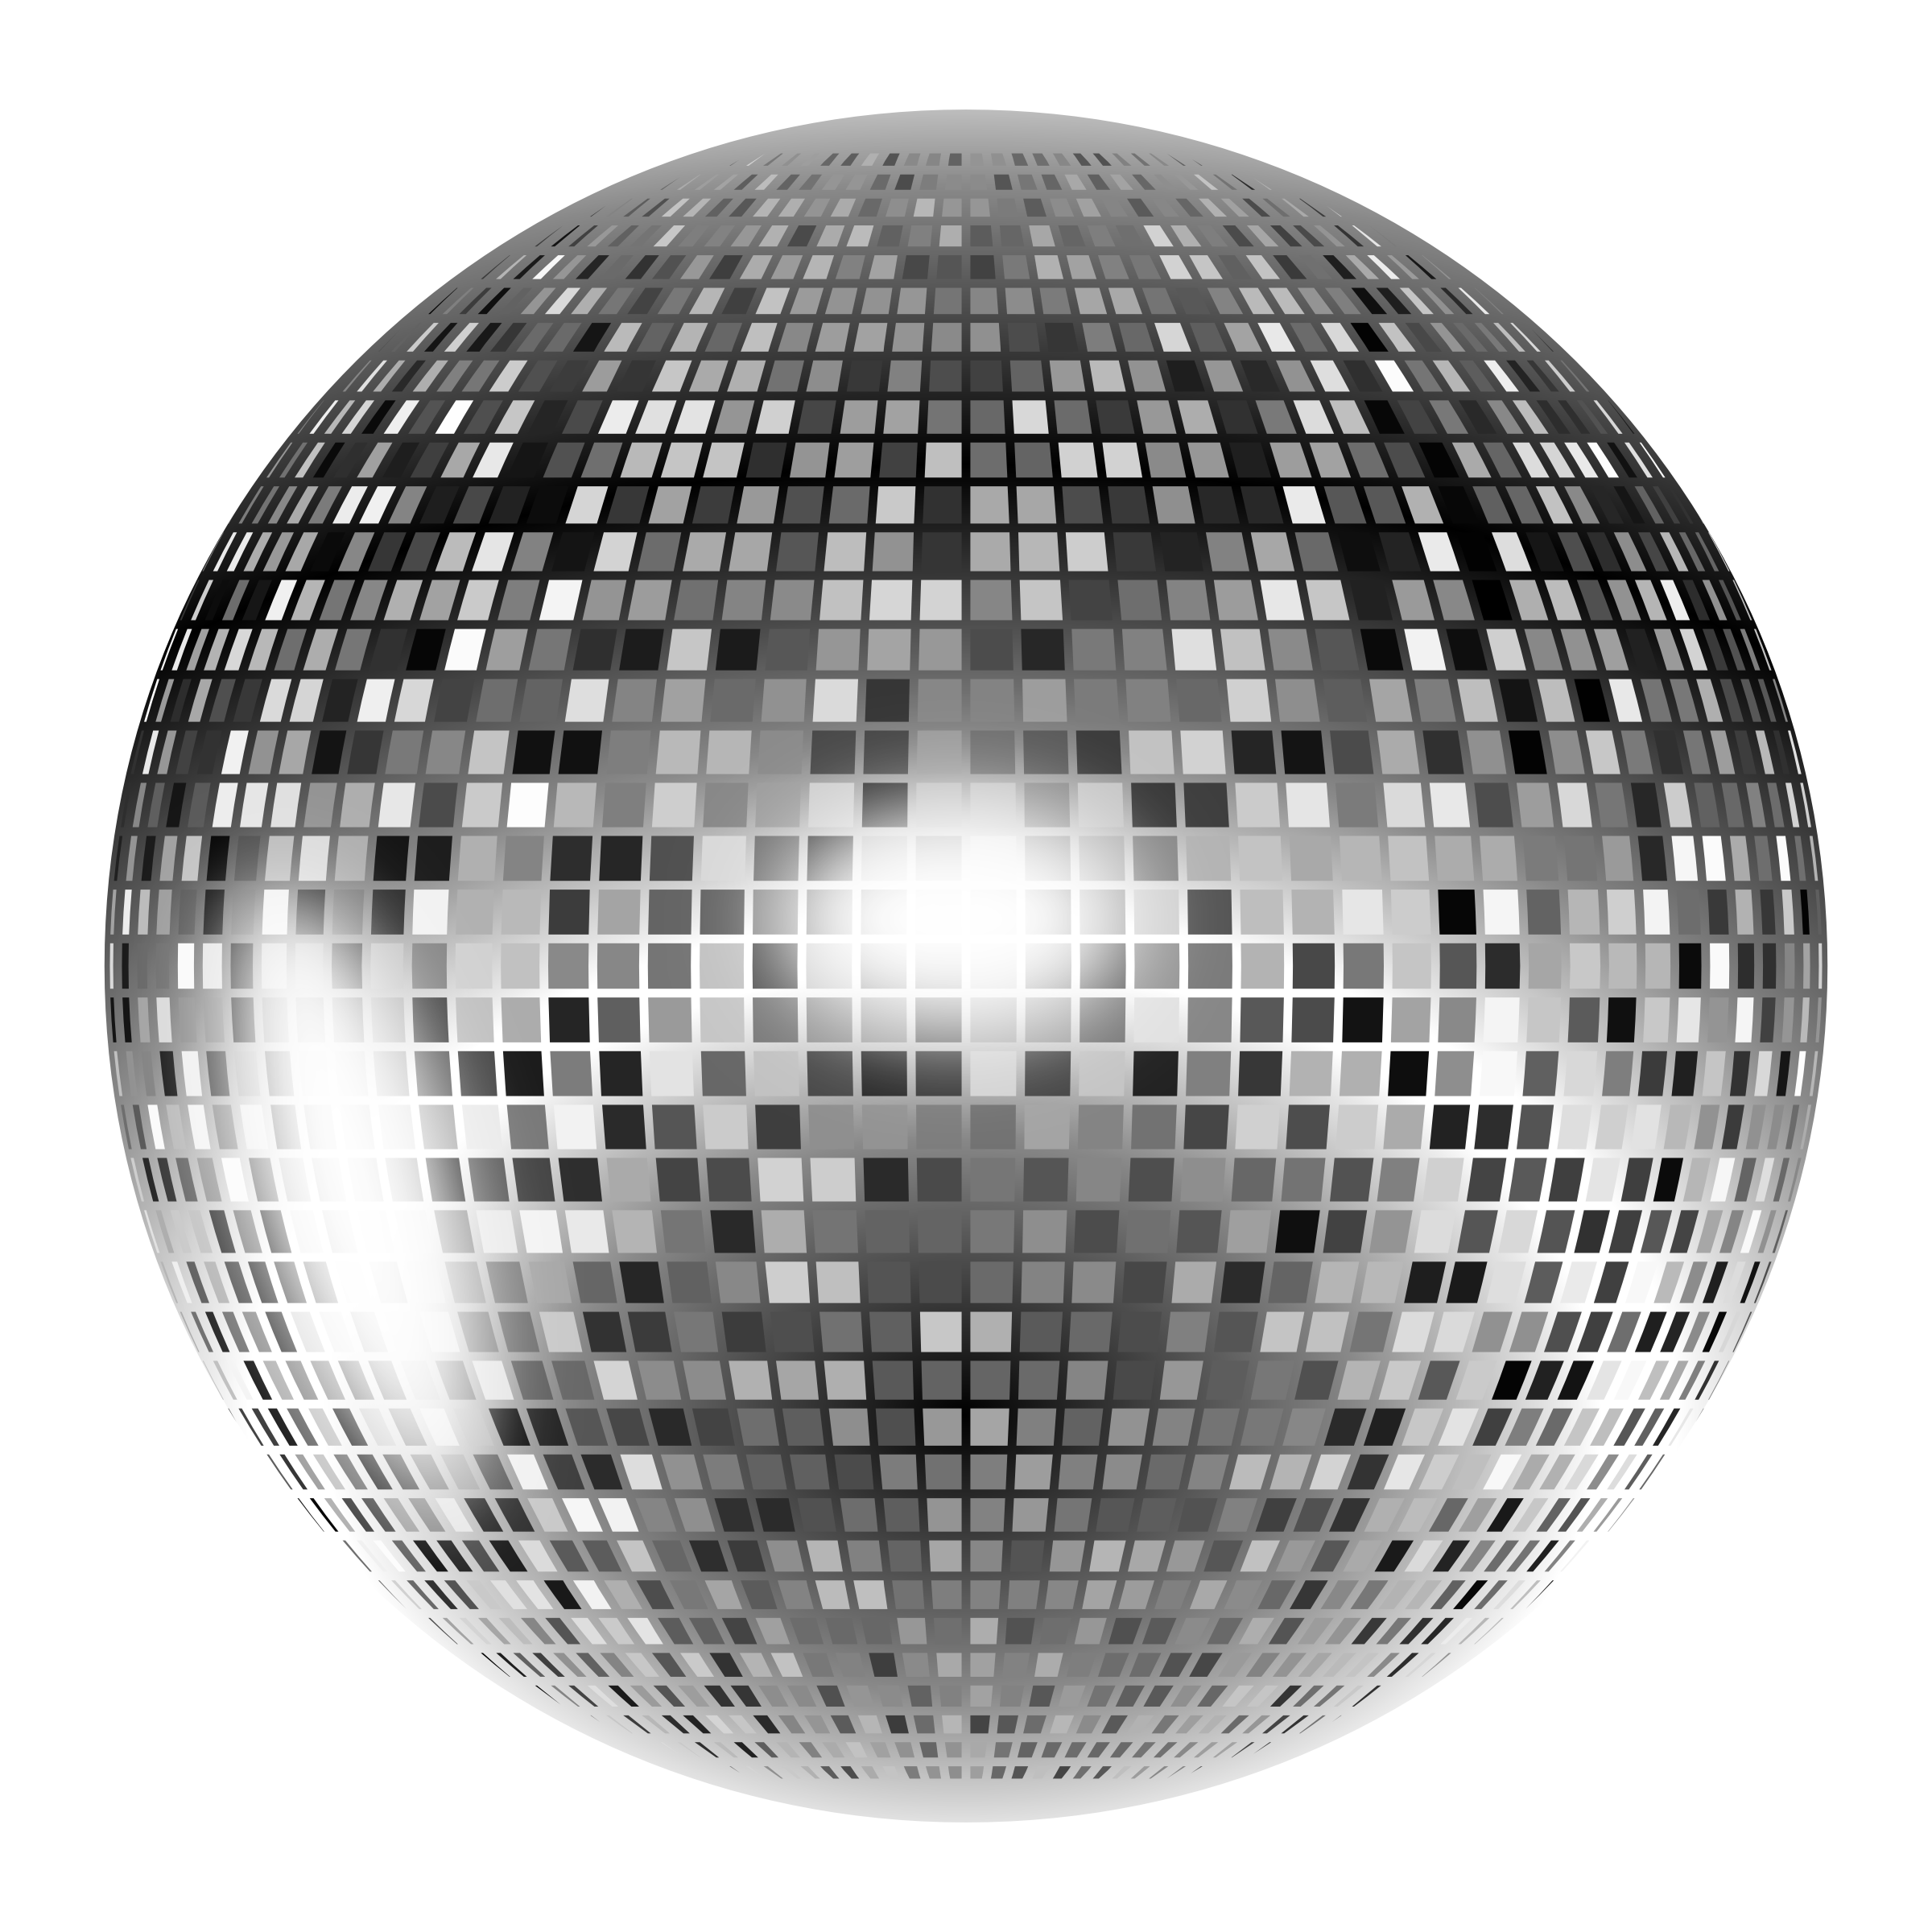 Disco Ball clipart #9, Download drawings